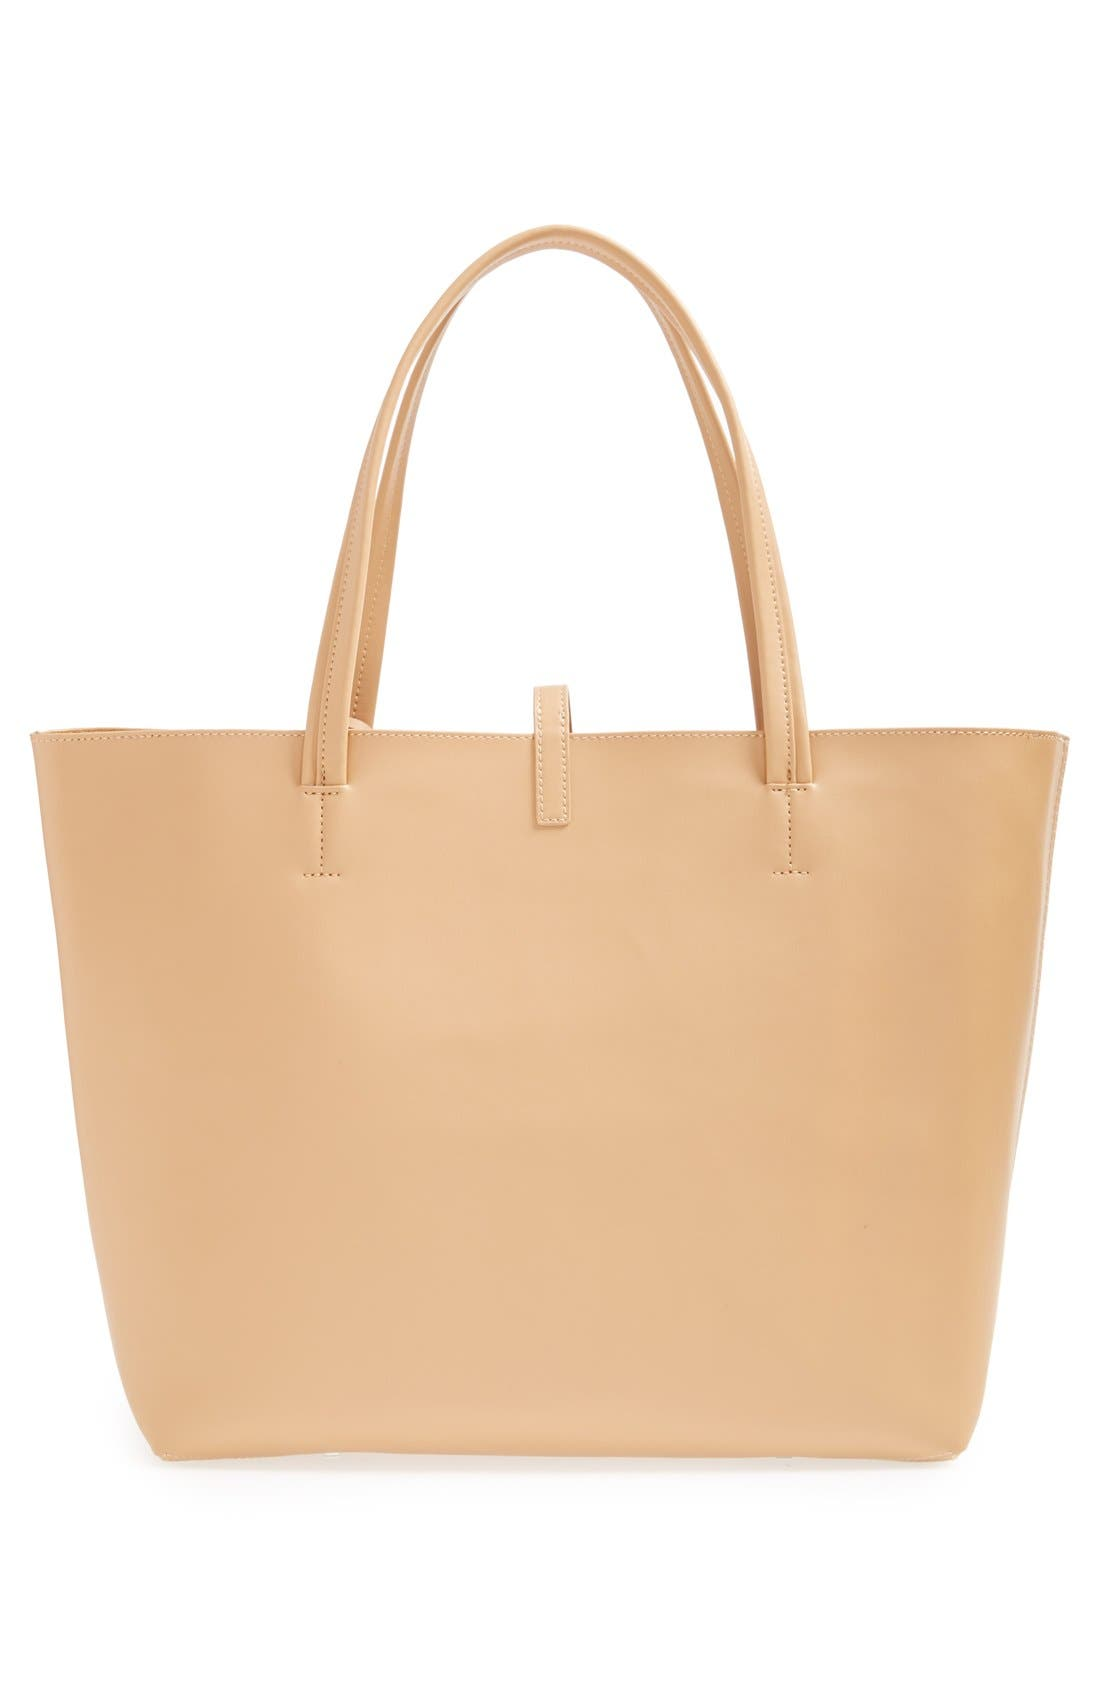 Alternate Image 3  - Vince Camuto 'Leila' Tote